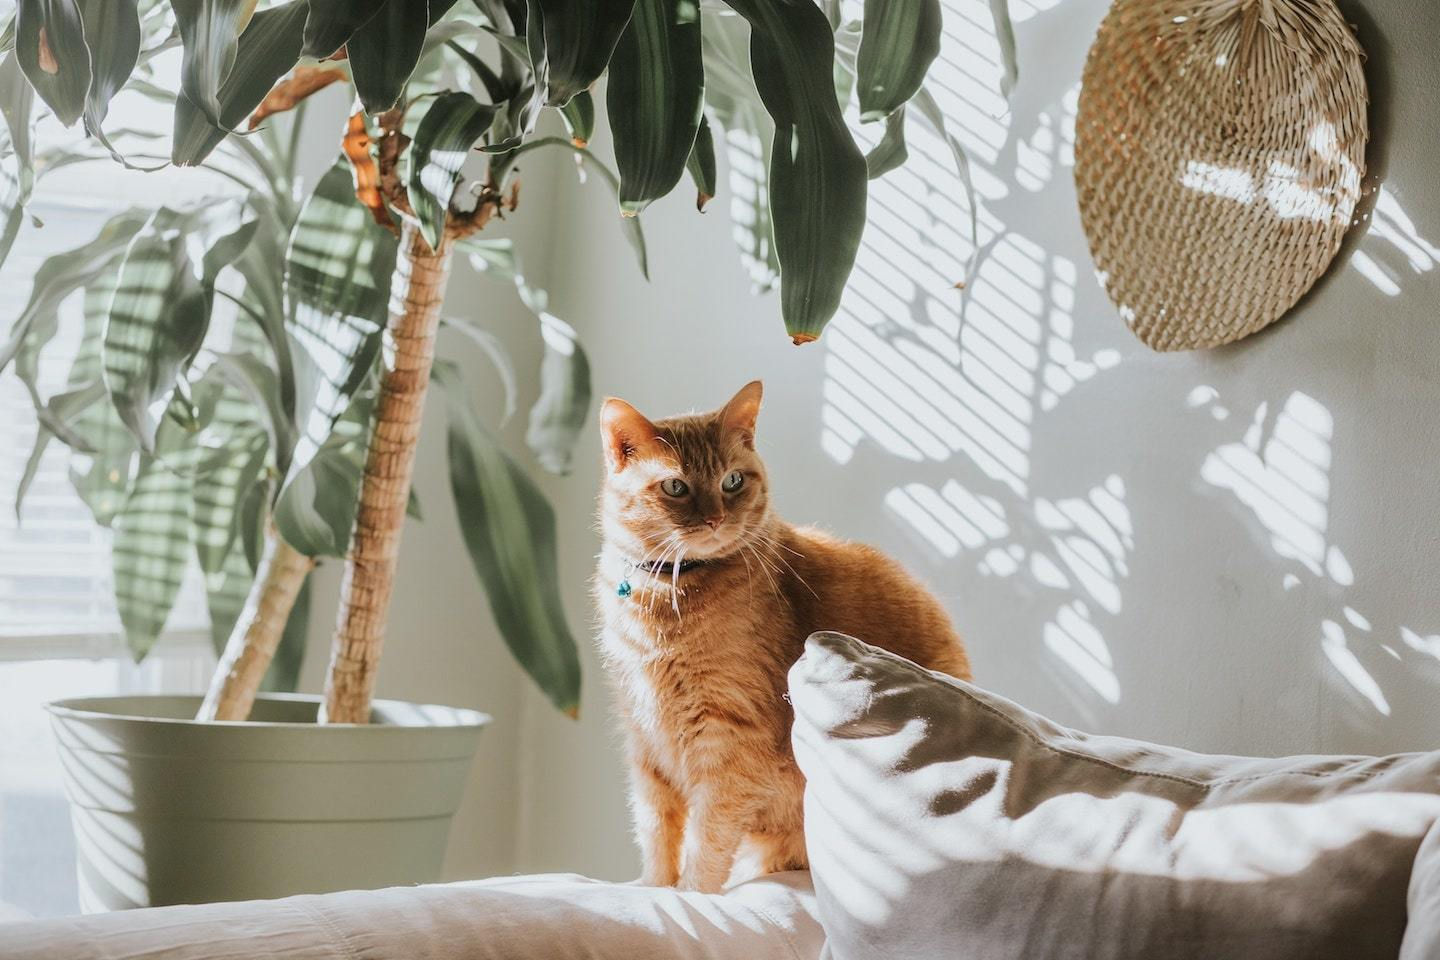 cat sitting on couch under plants casting shadow